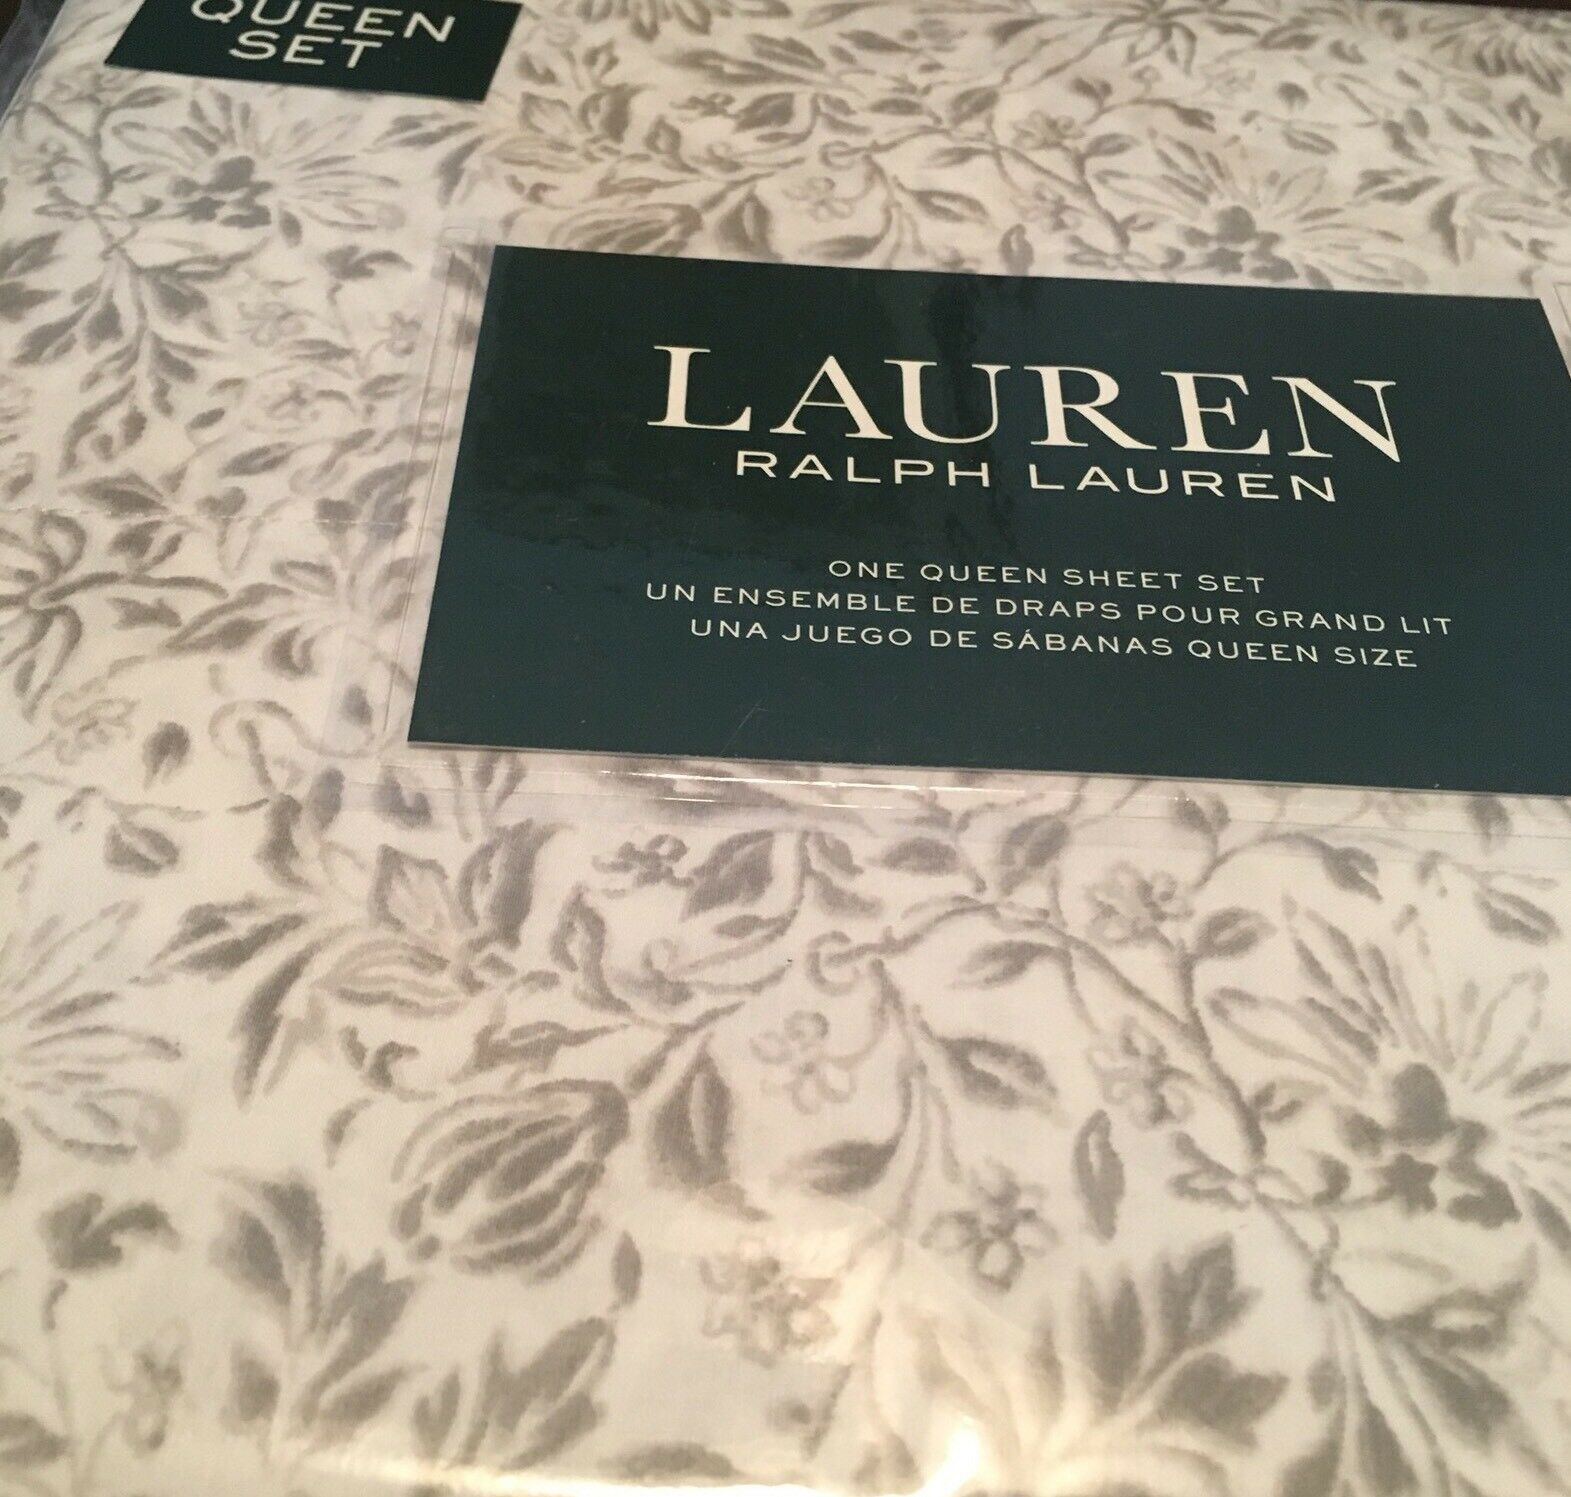 Ralph Lauren Königin XDP Sheet Set 4p TAUPE & CREAM Kunstistic Floral NIP- Free Ship